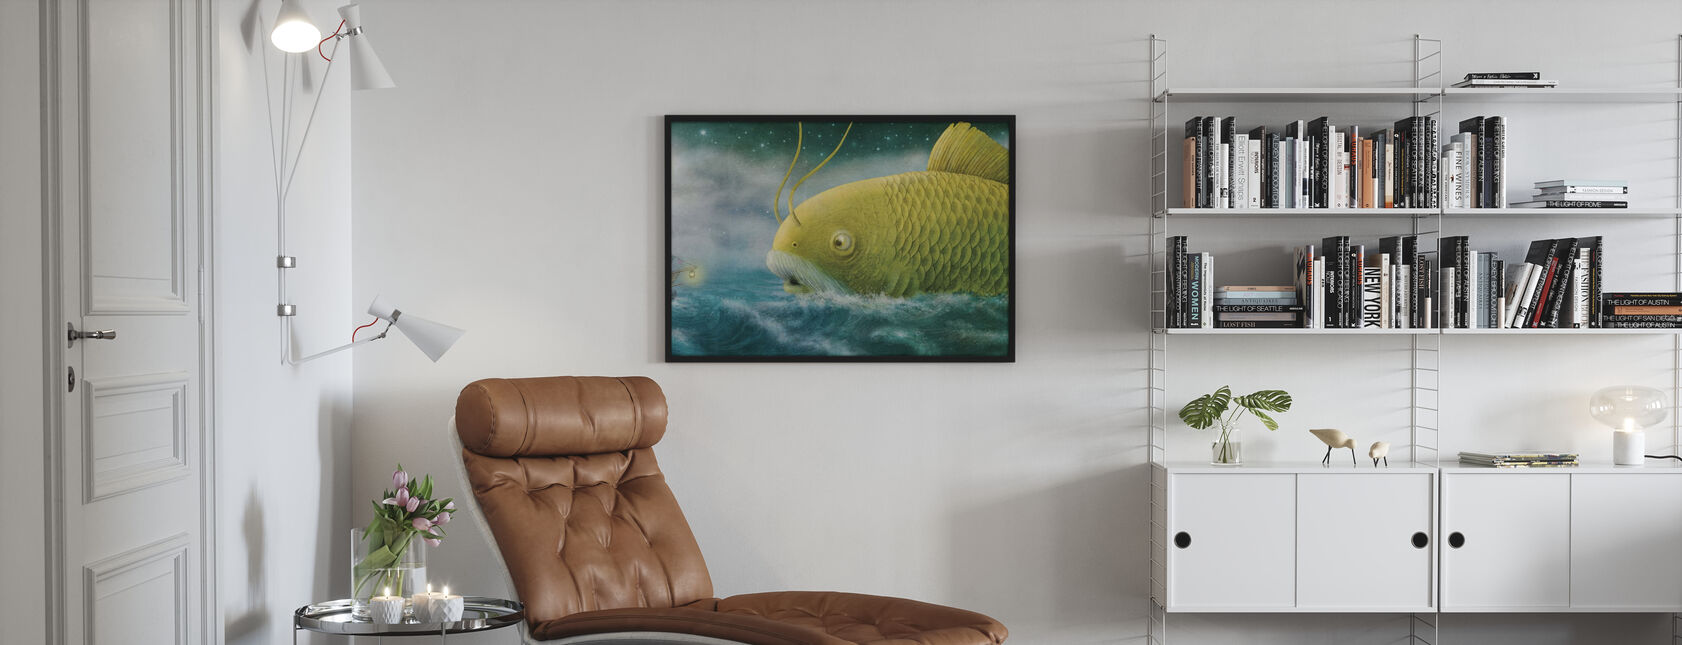 Ocean Meets Sky Finn and the Golden Fish - Poster - Living Room